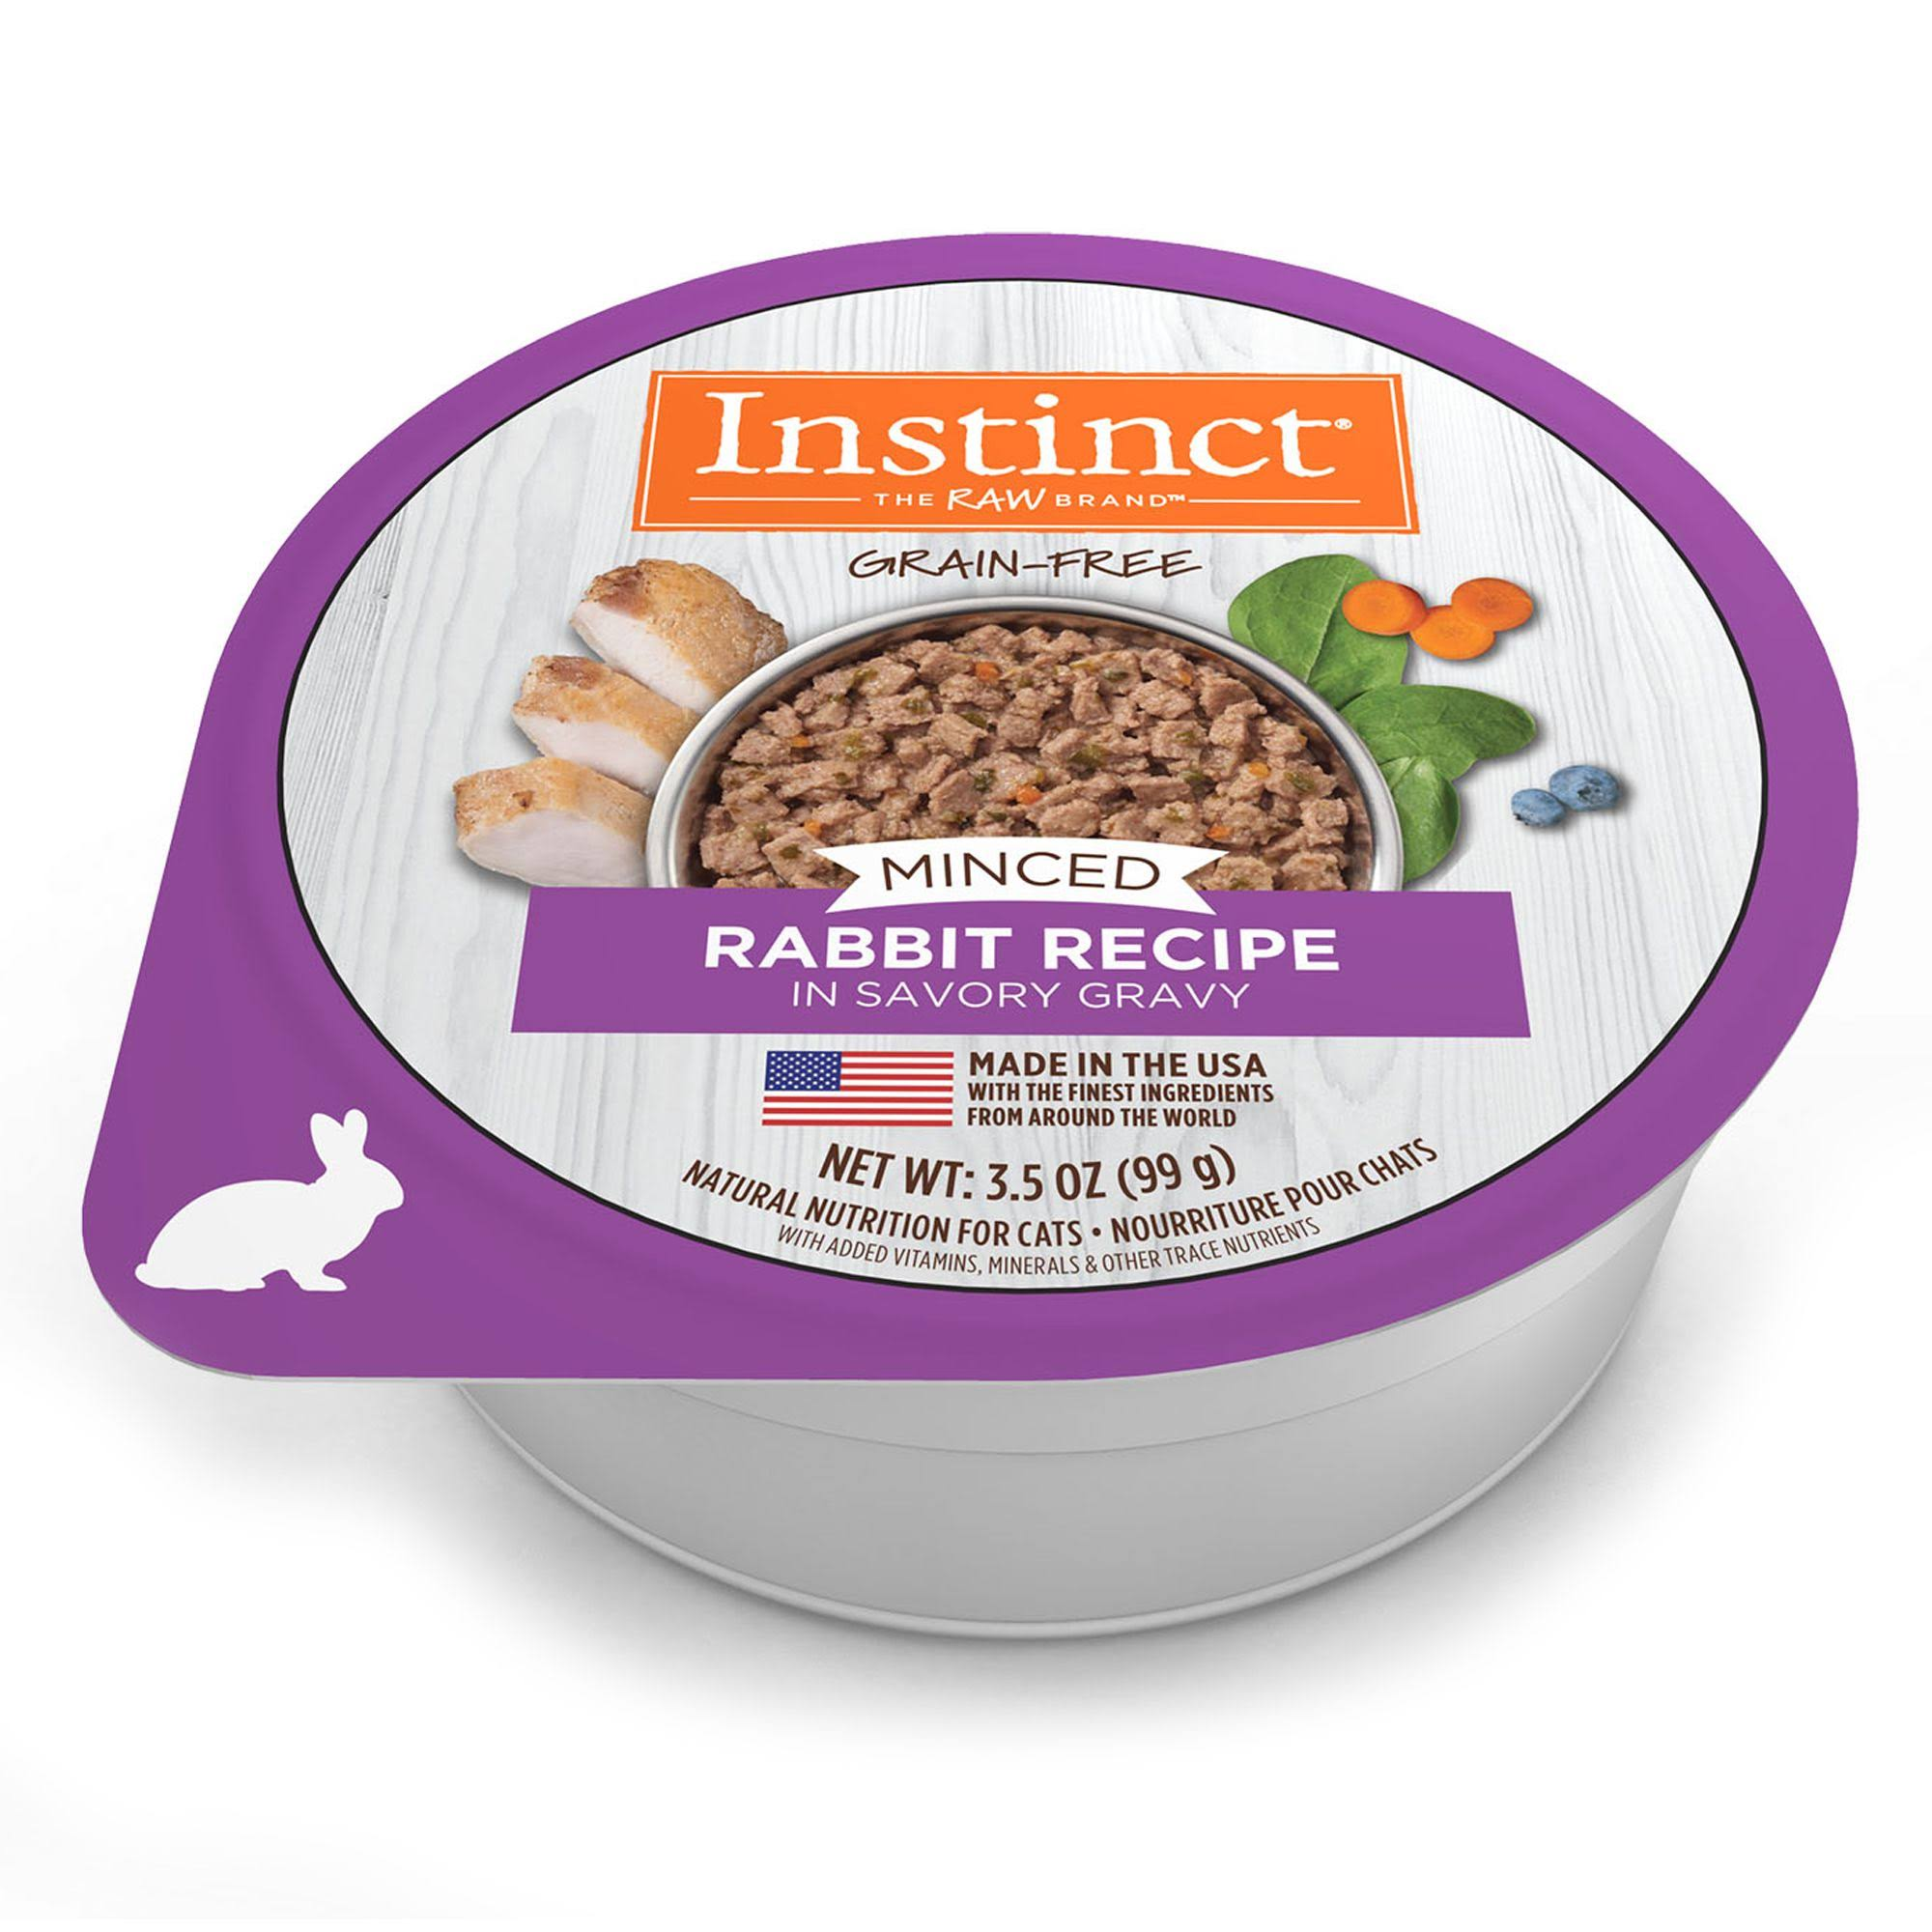 Instinct Minced Rabbit Recipe Wet Cat Food